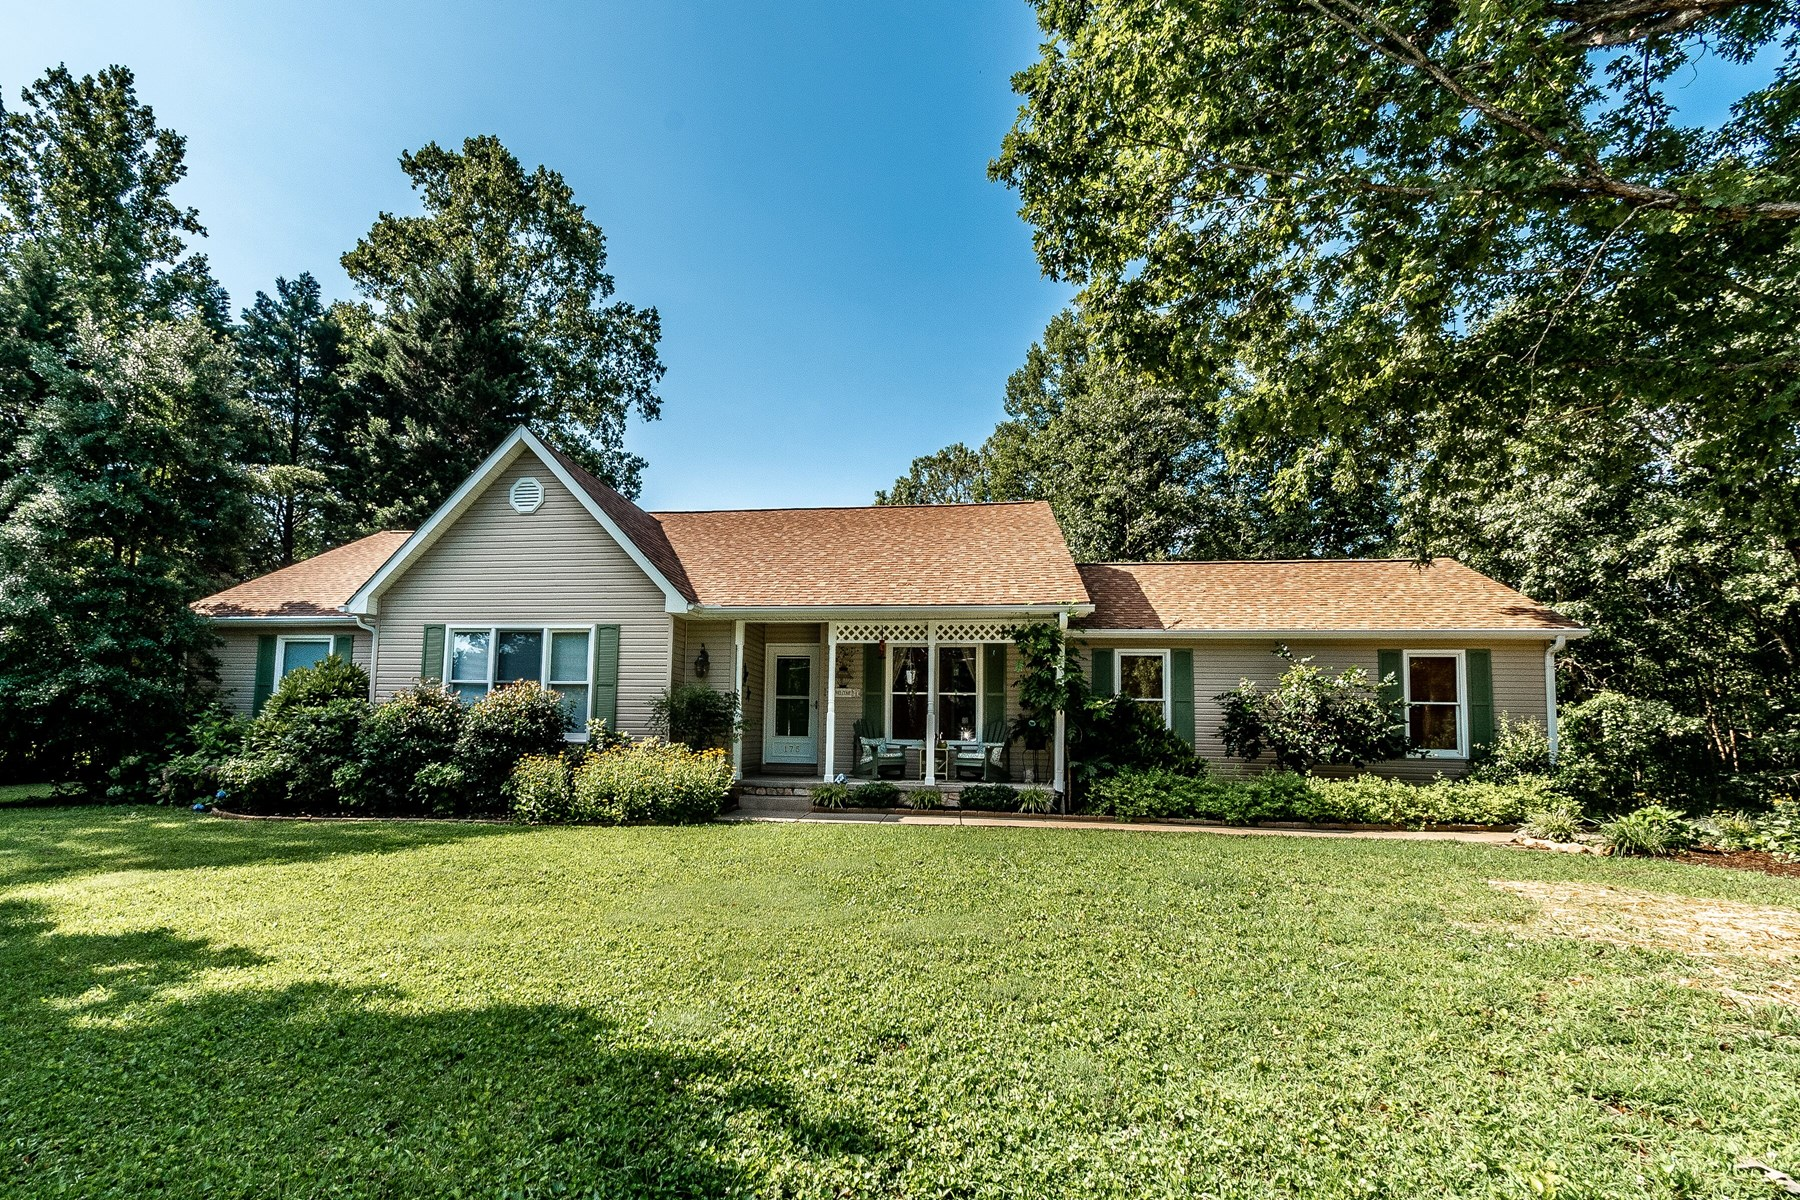 Home for sale in Pinnacle NC